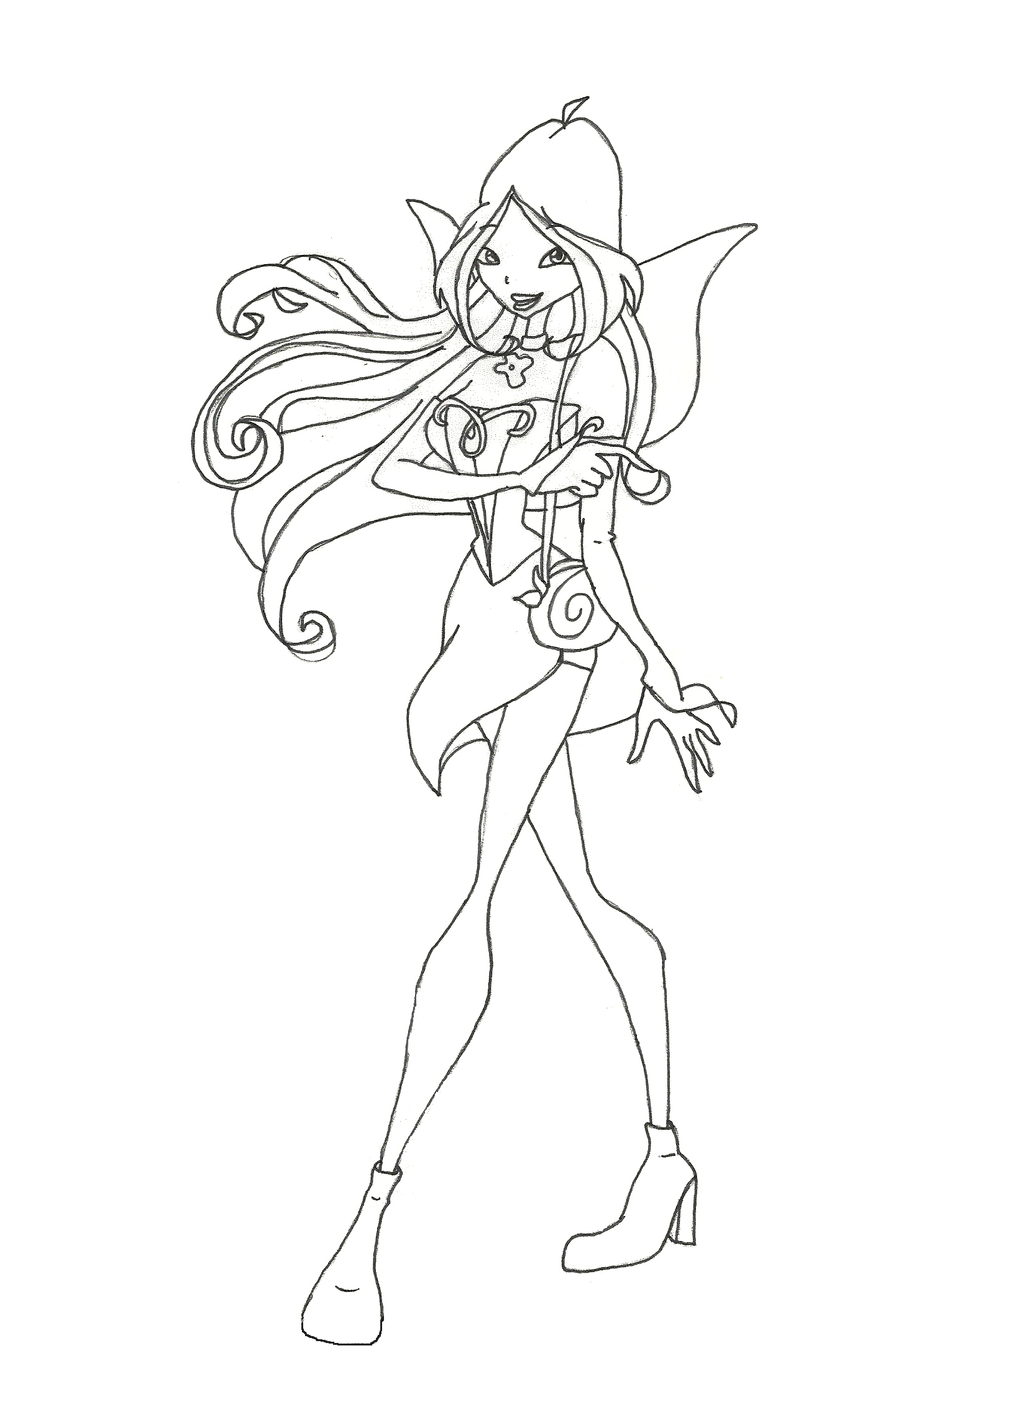 Winx club coloring games online - Winx Club Charmix Flora Coloring Page By